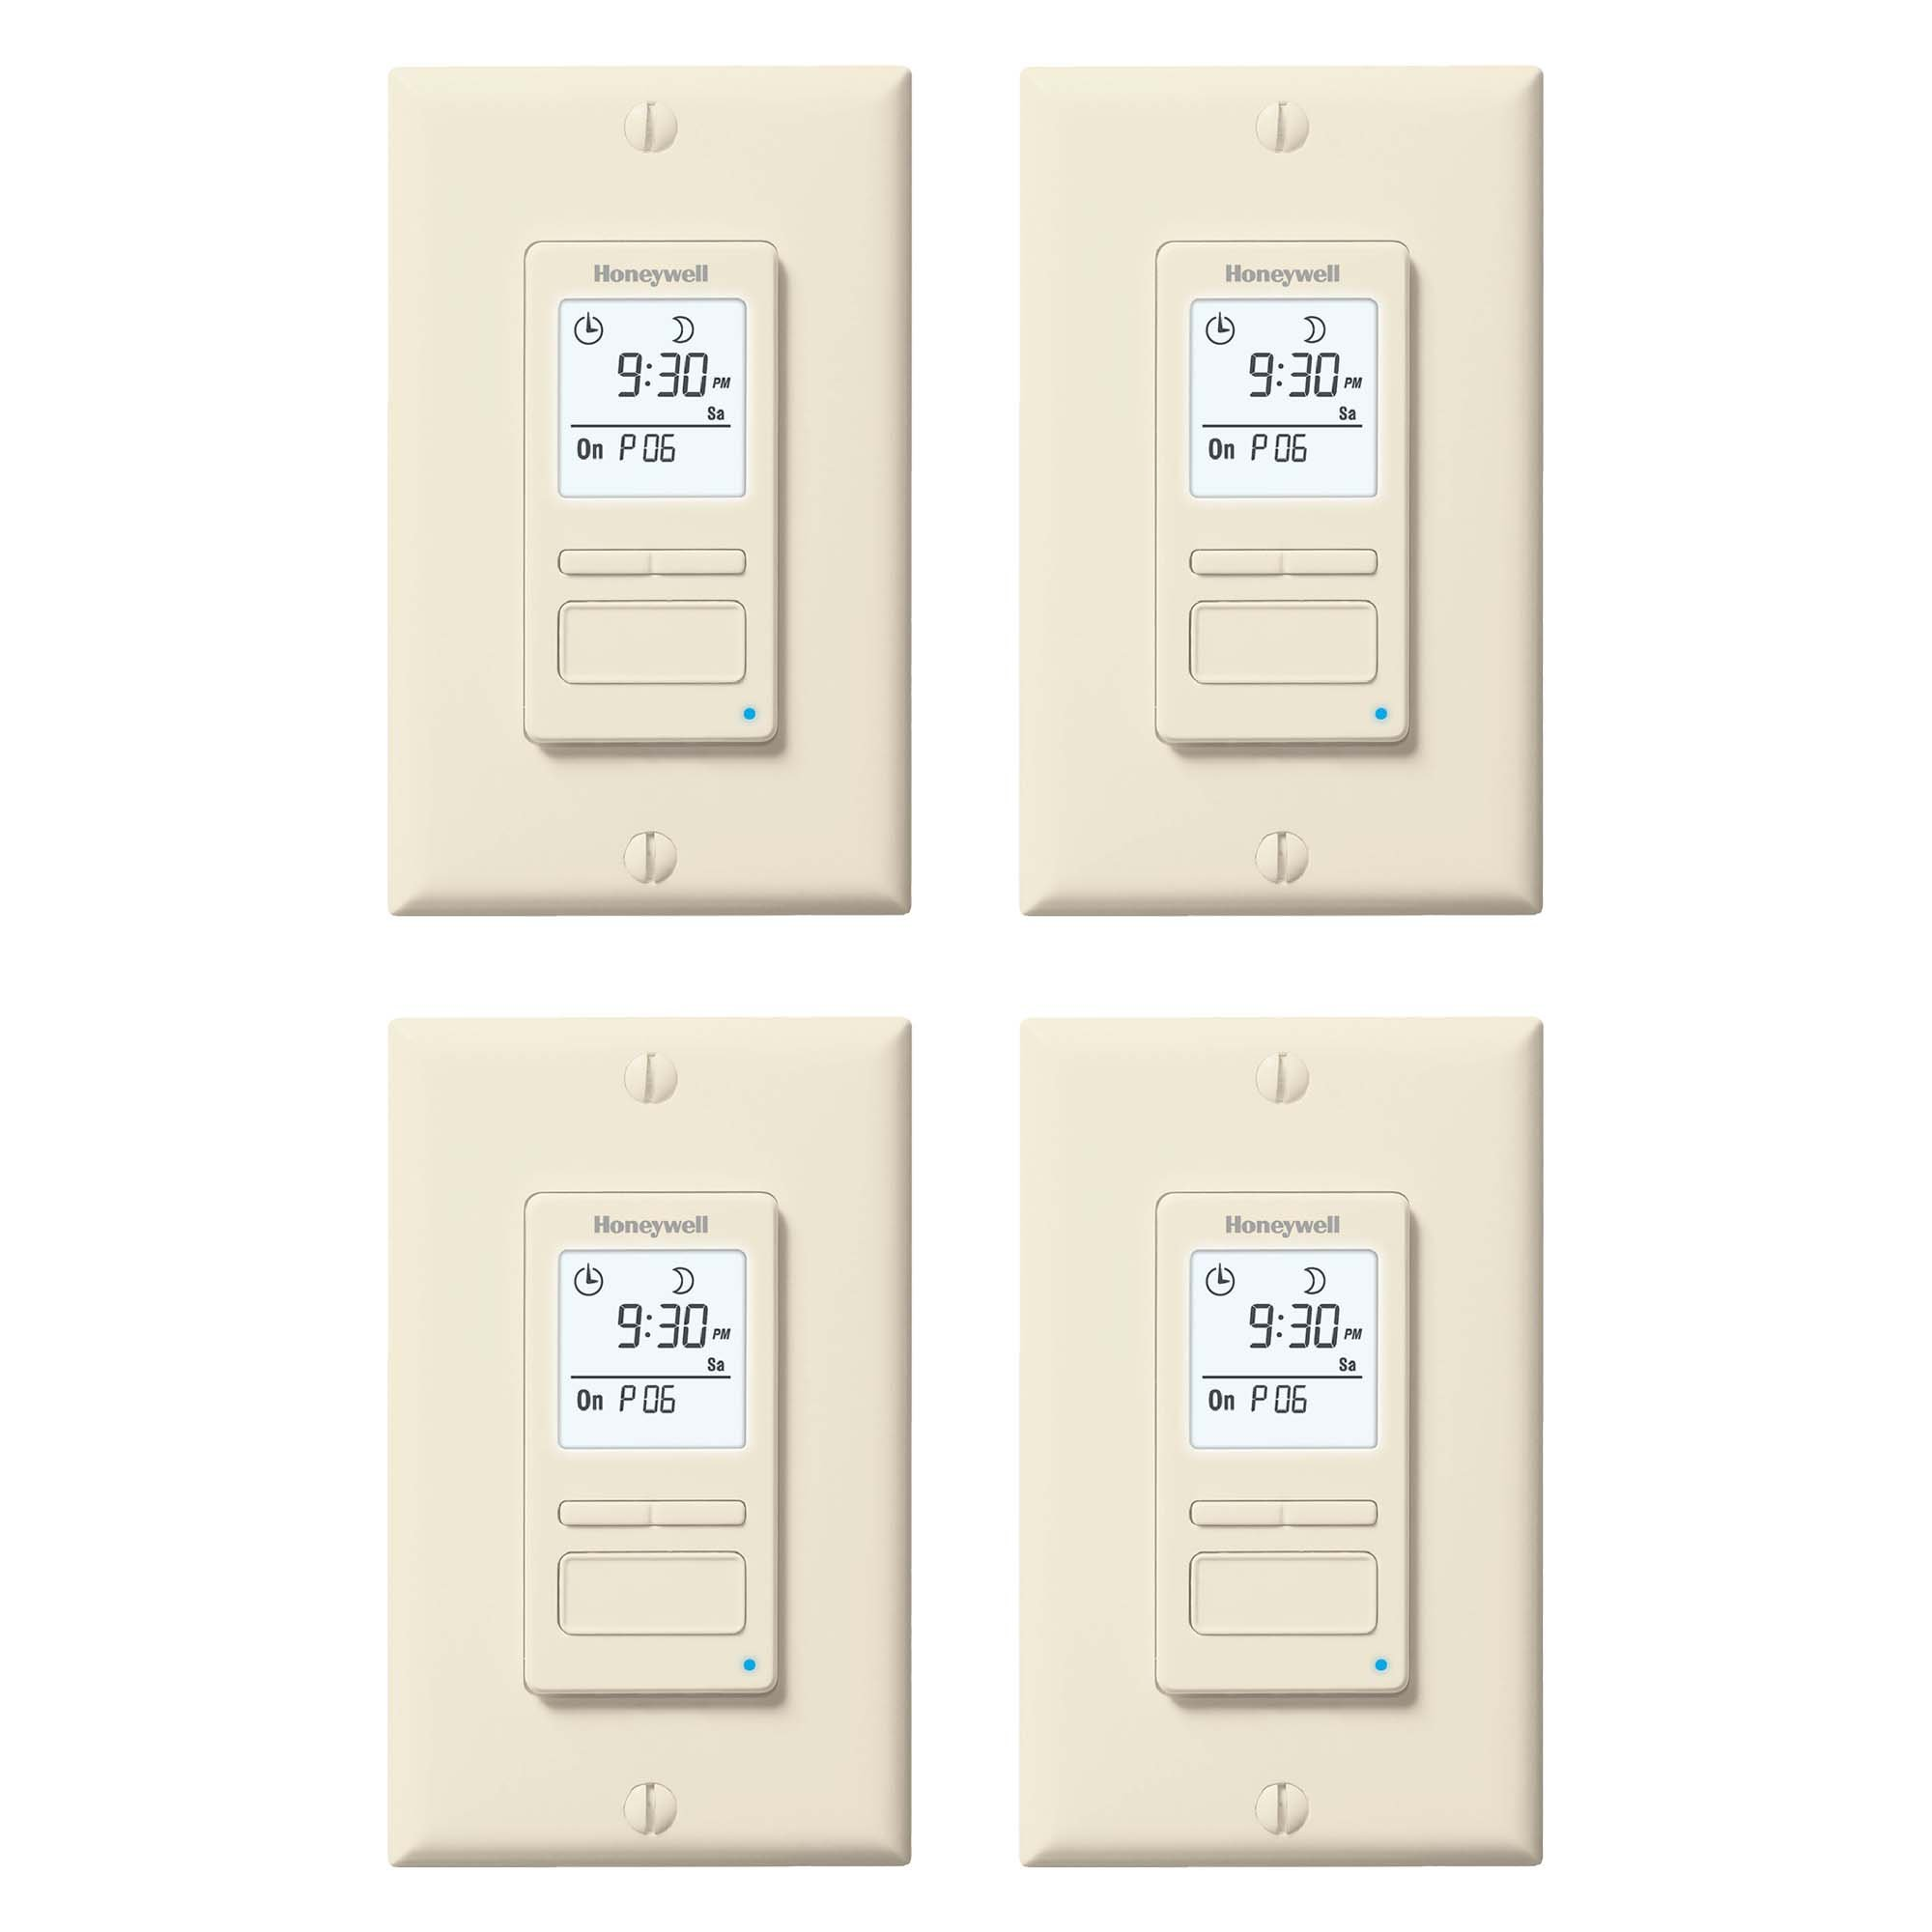 Honeywell EconoSwitch 7 Day Programmable Solar Power Light Switch Timer, 4 Pack